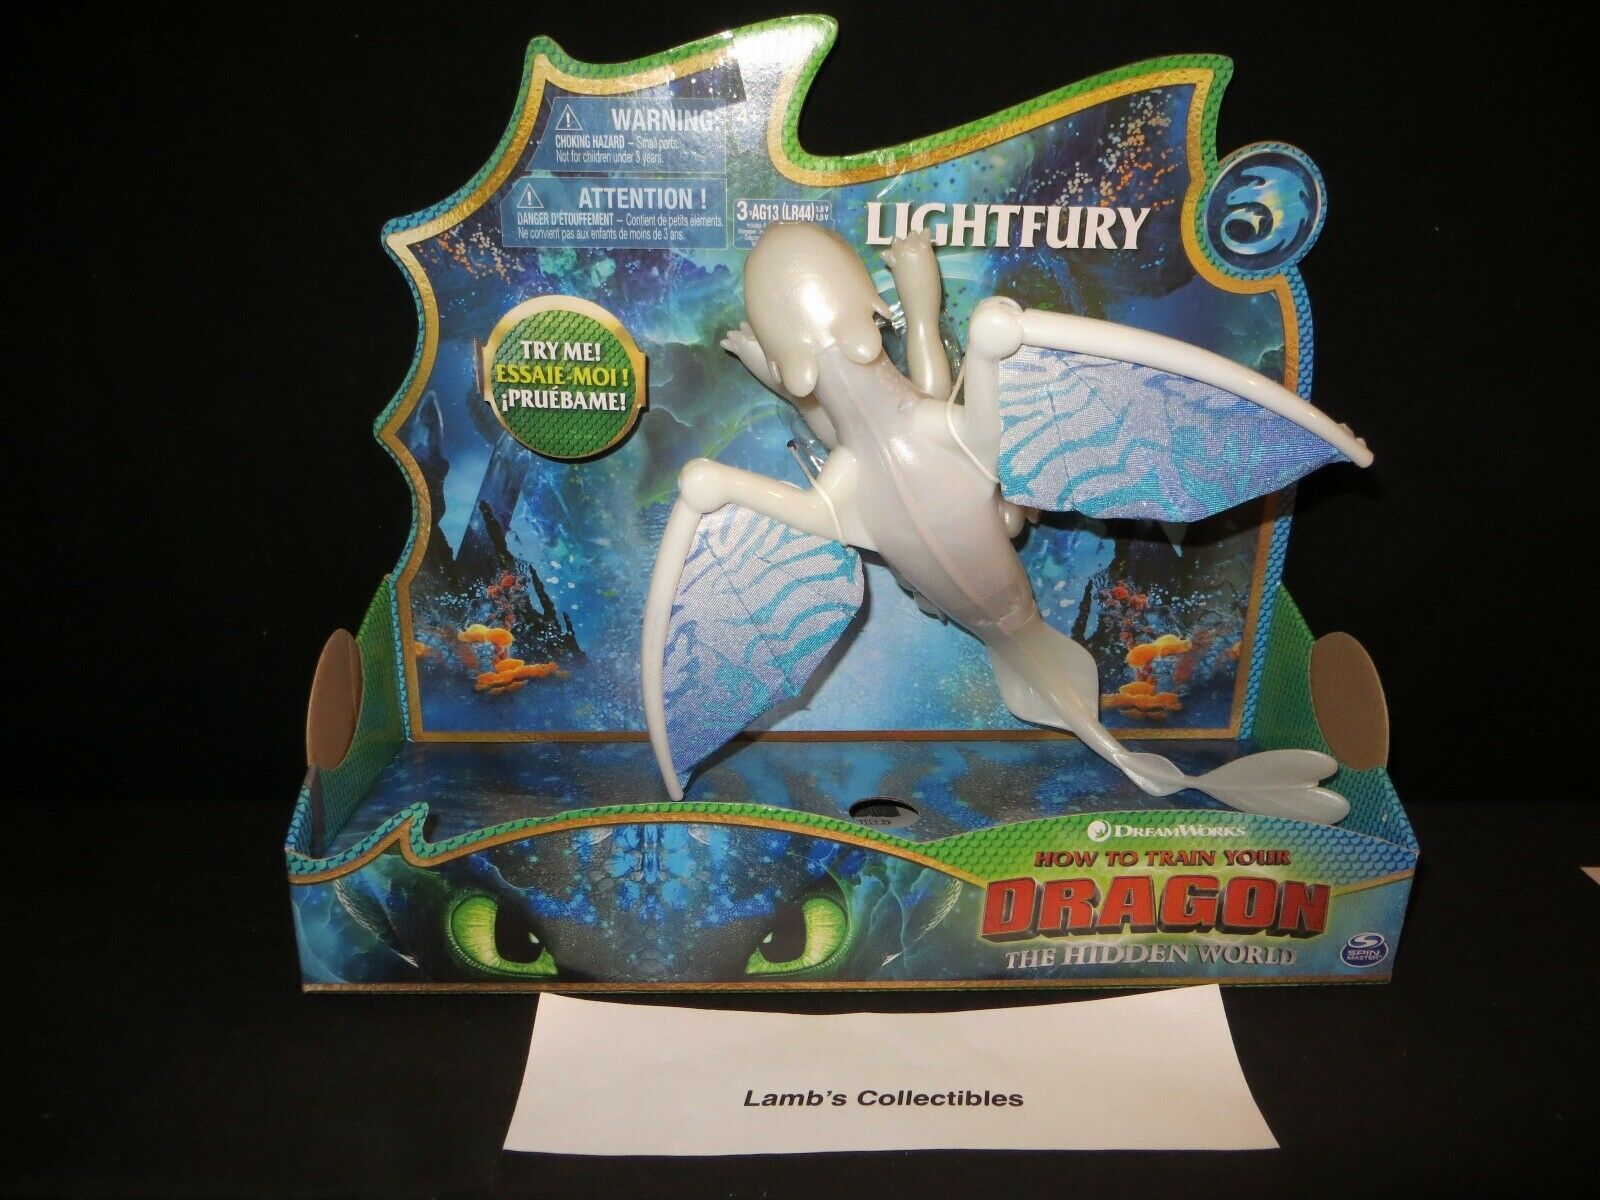 Primary image for DreamWorks How to train your Dragon 3 The Hidden World deluxe dragon light fury